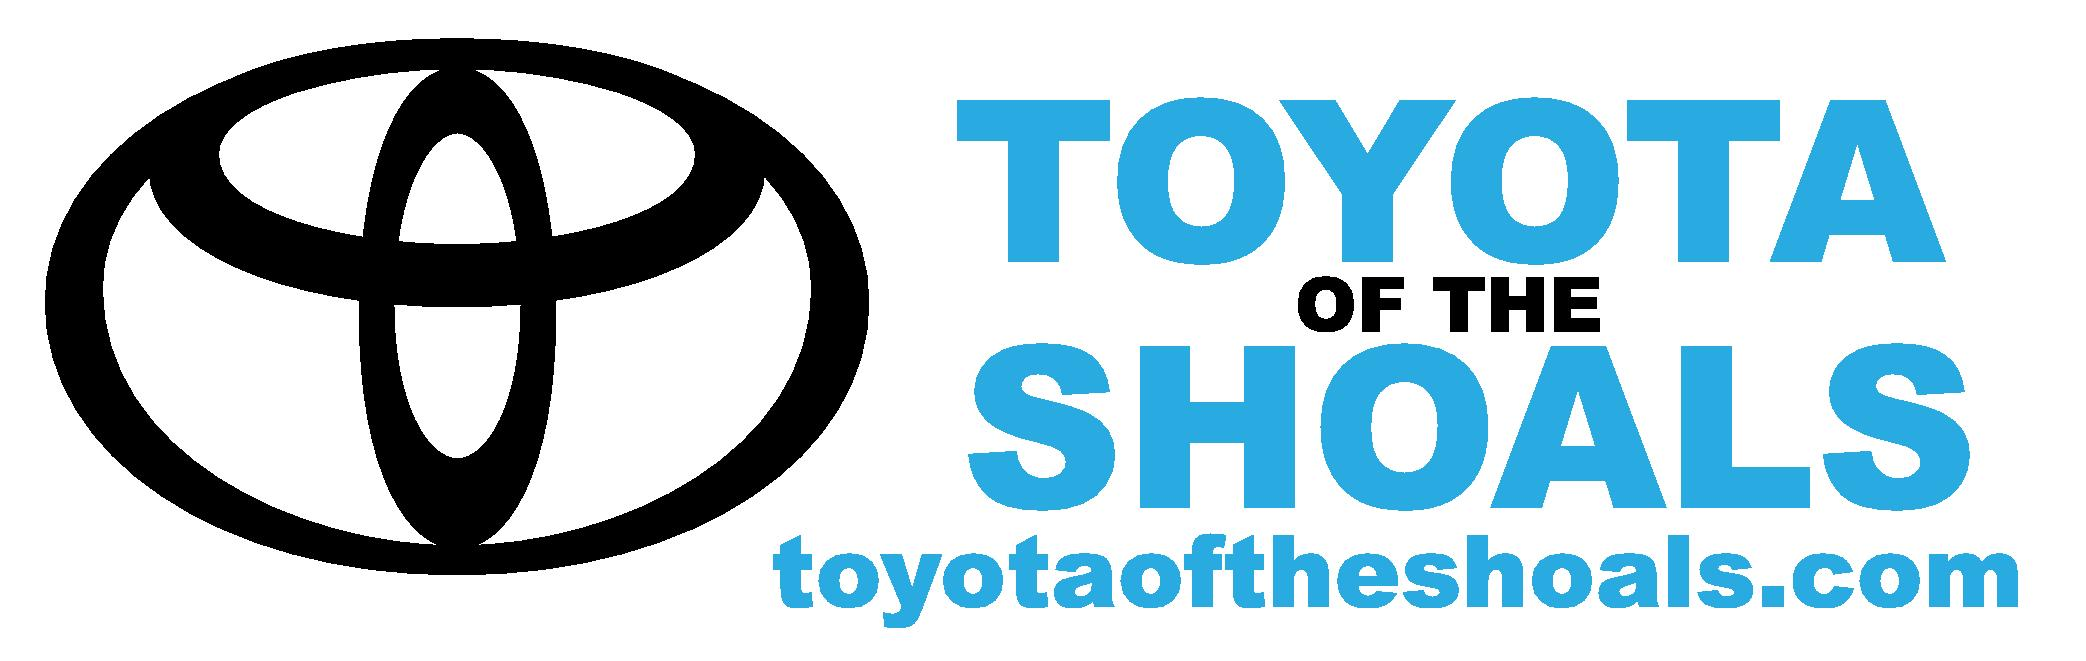 Toyota of the Shoals